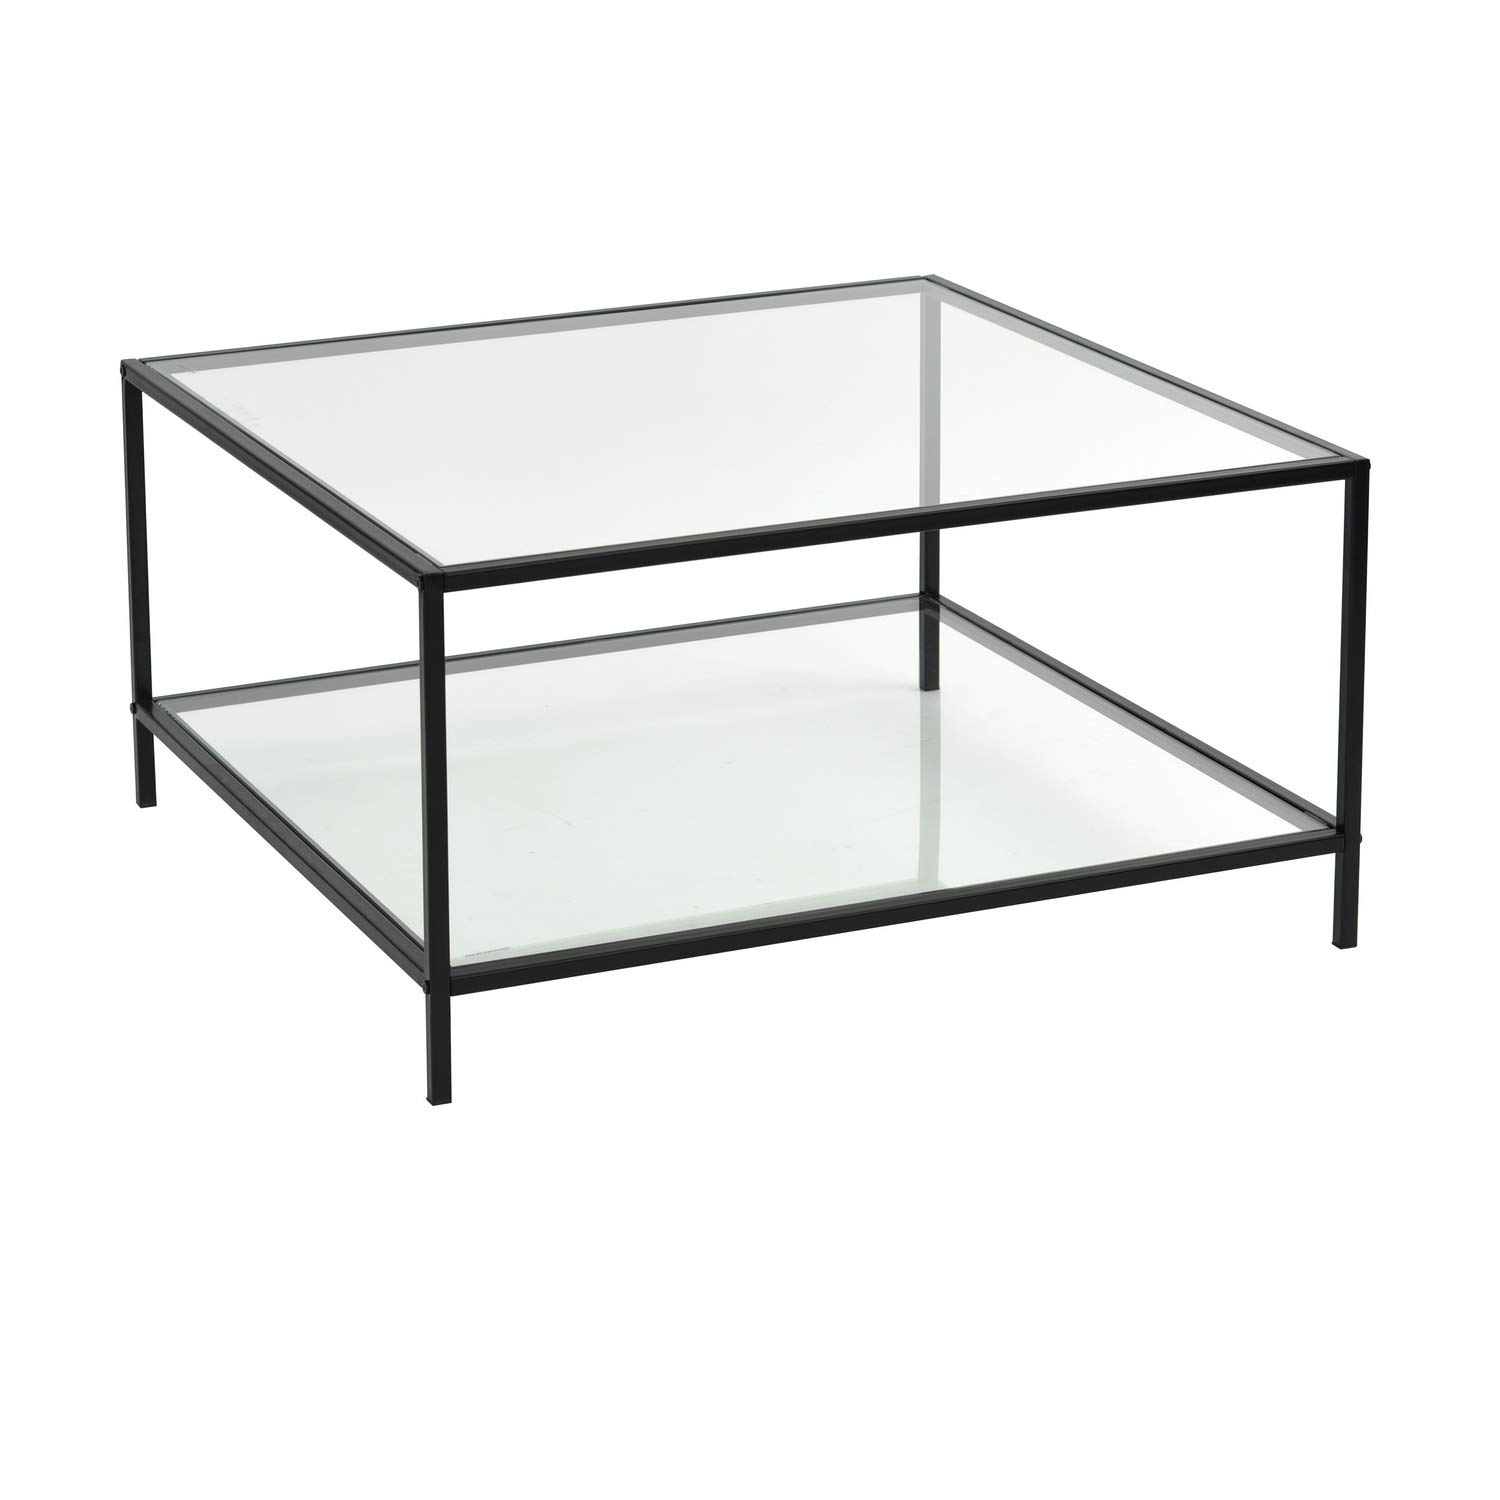 Fine Furniturer Modern Lux Glass Coffee Table Tempered Glass Top Metal Frame Occasional Living Room Table With Storage Shelf Machost Co Dining Chair Design Ideas Machostcouk